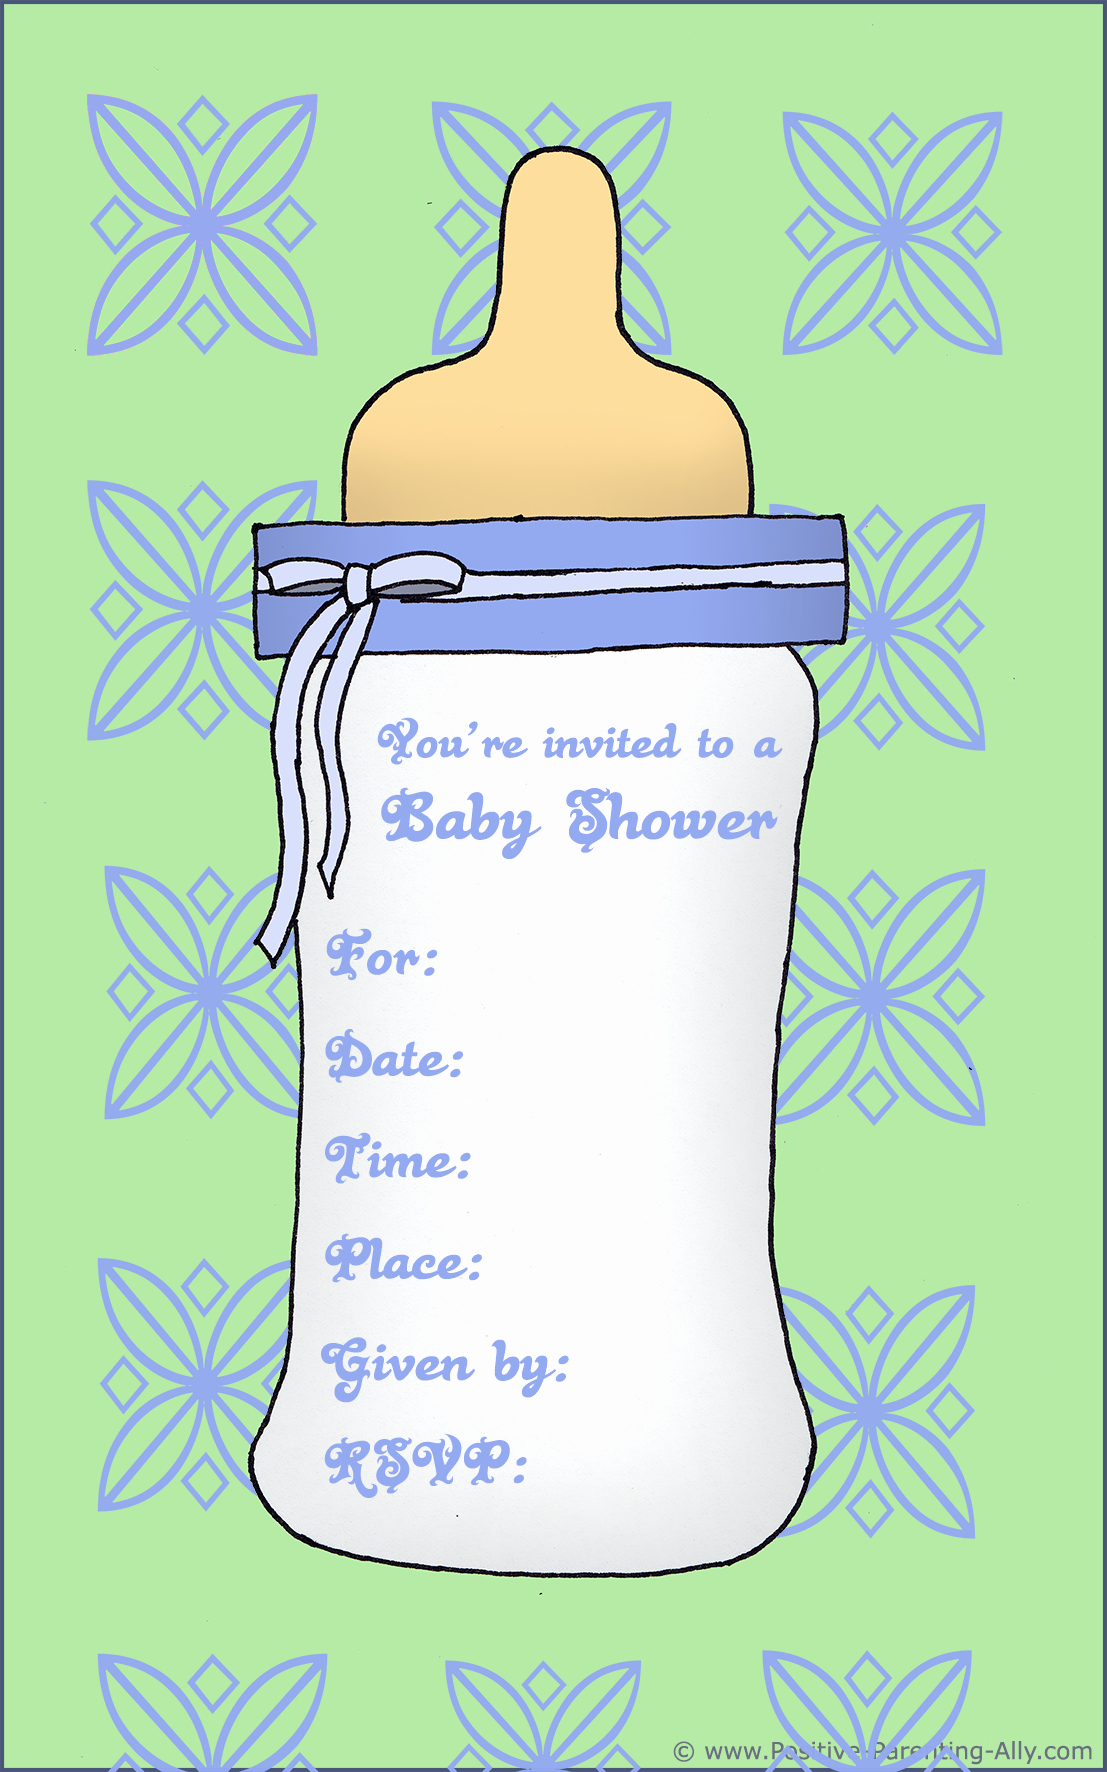 Baby Shower Invitation Printable Best Of Free Printable Baby Shower Invitations In High Quality